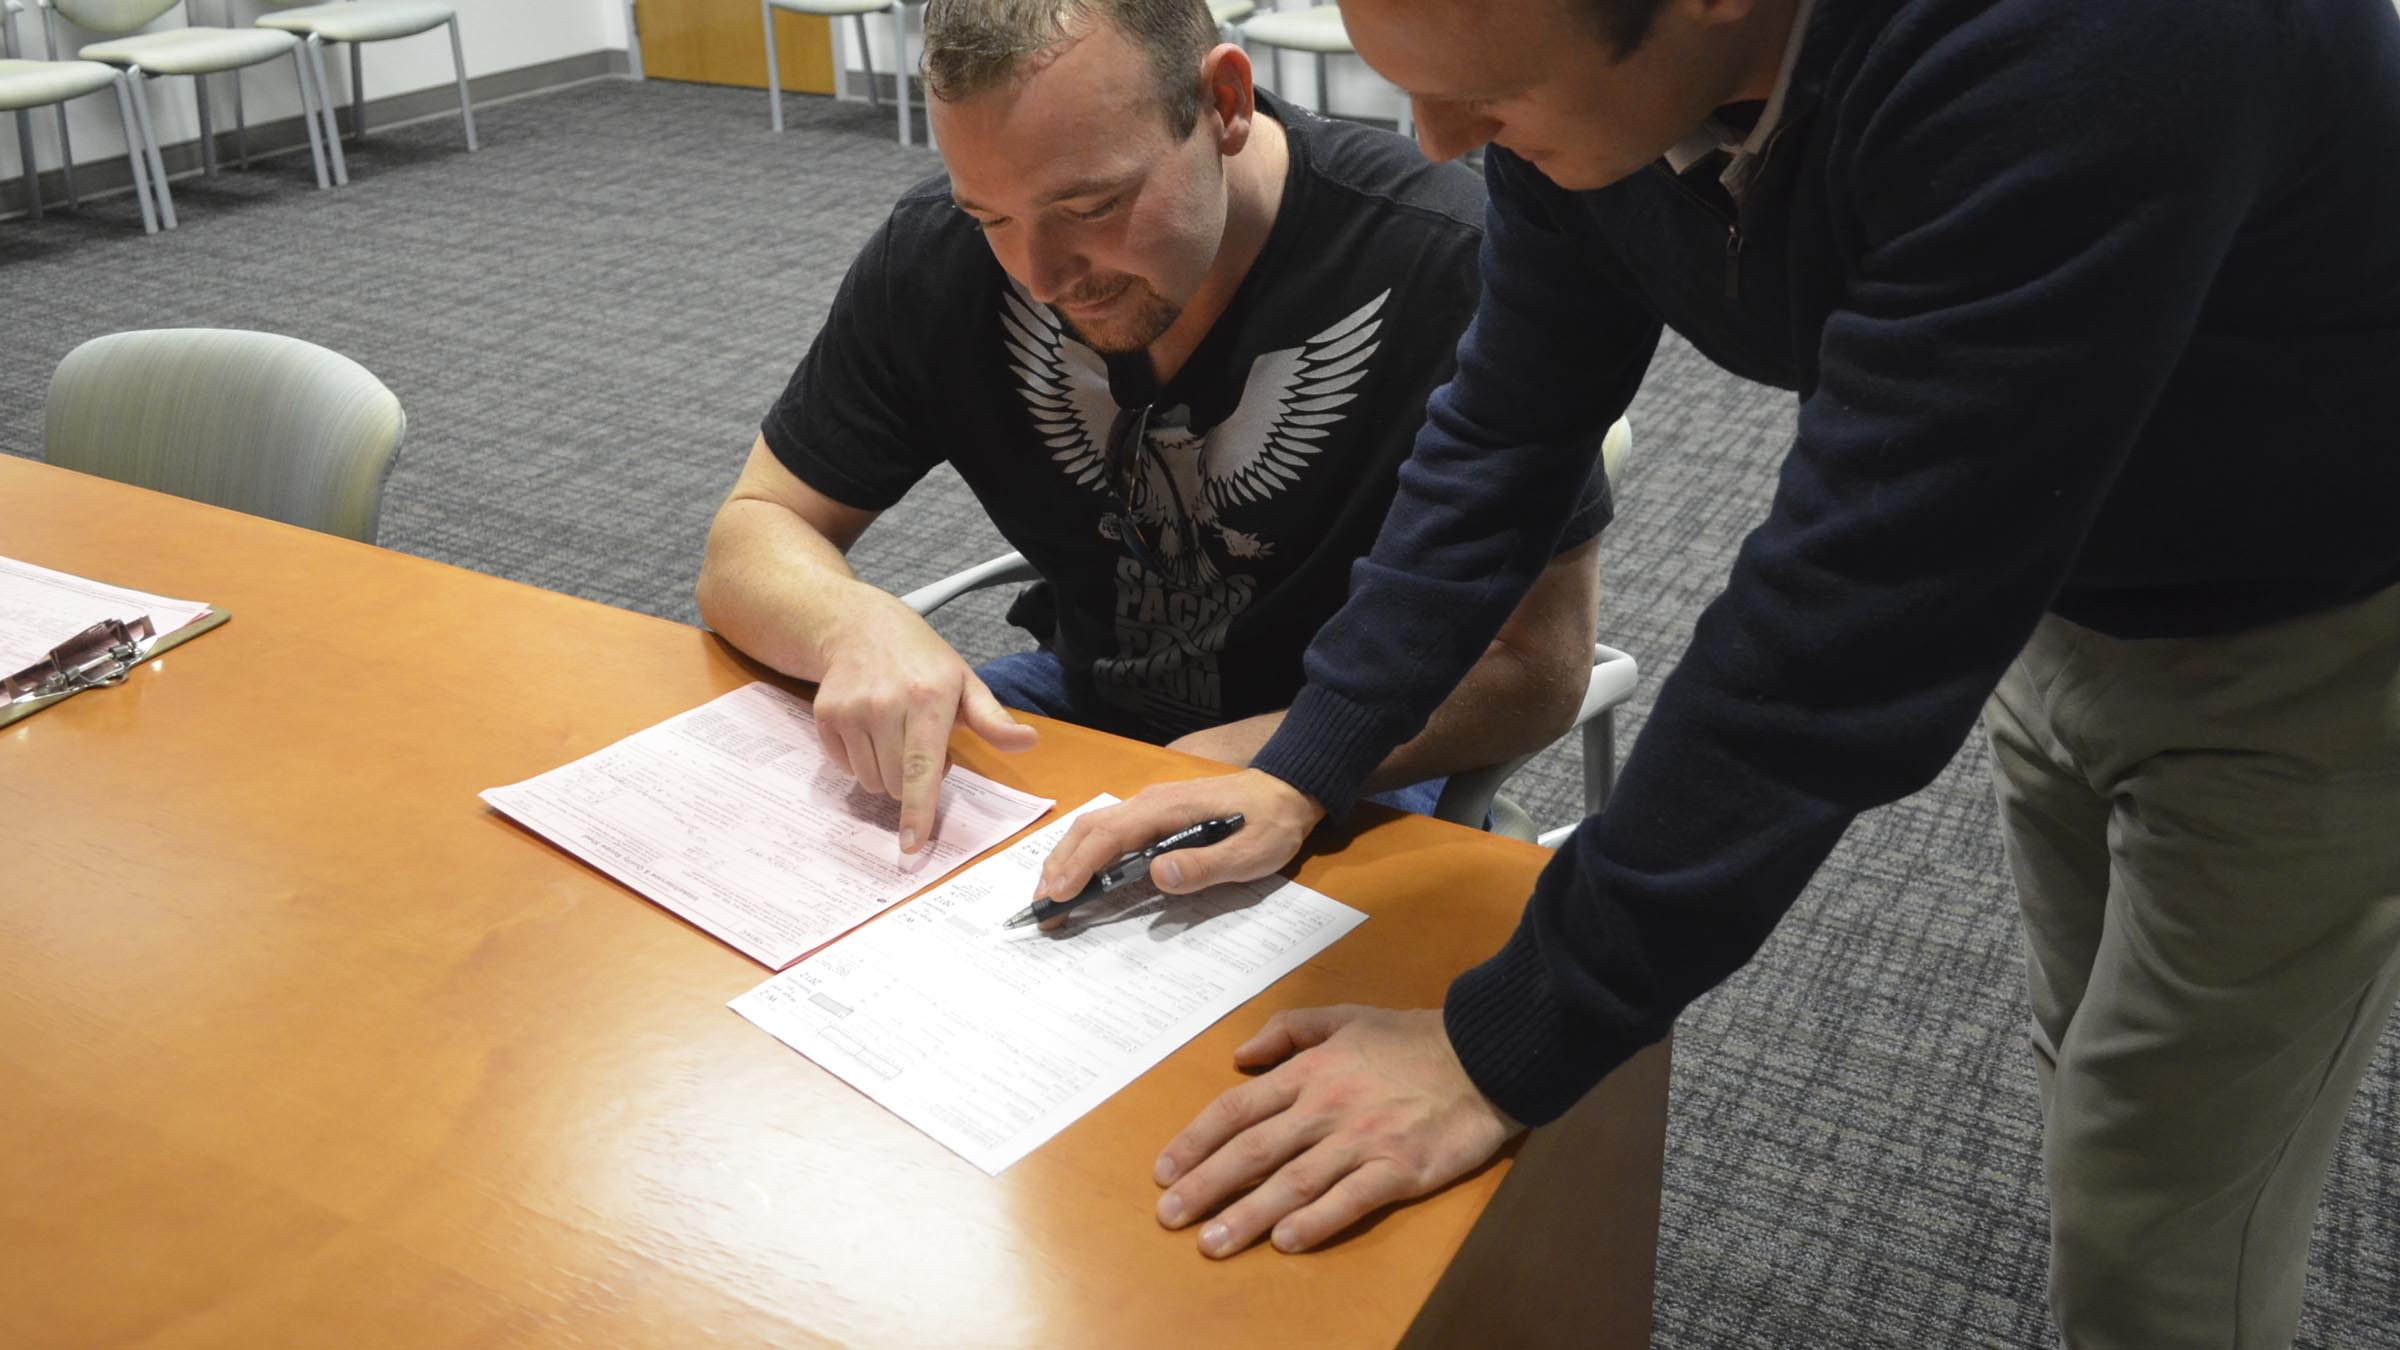 Man helping another man with filing paperwork